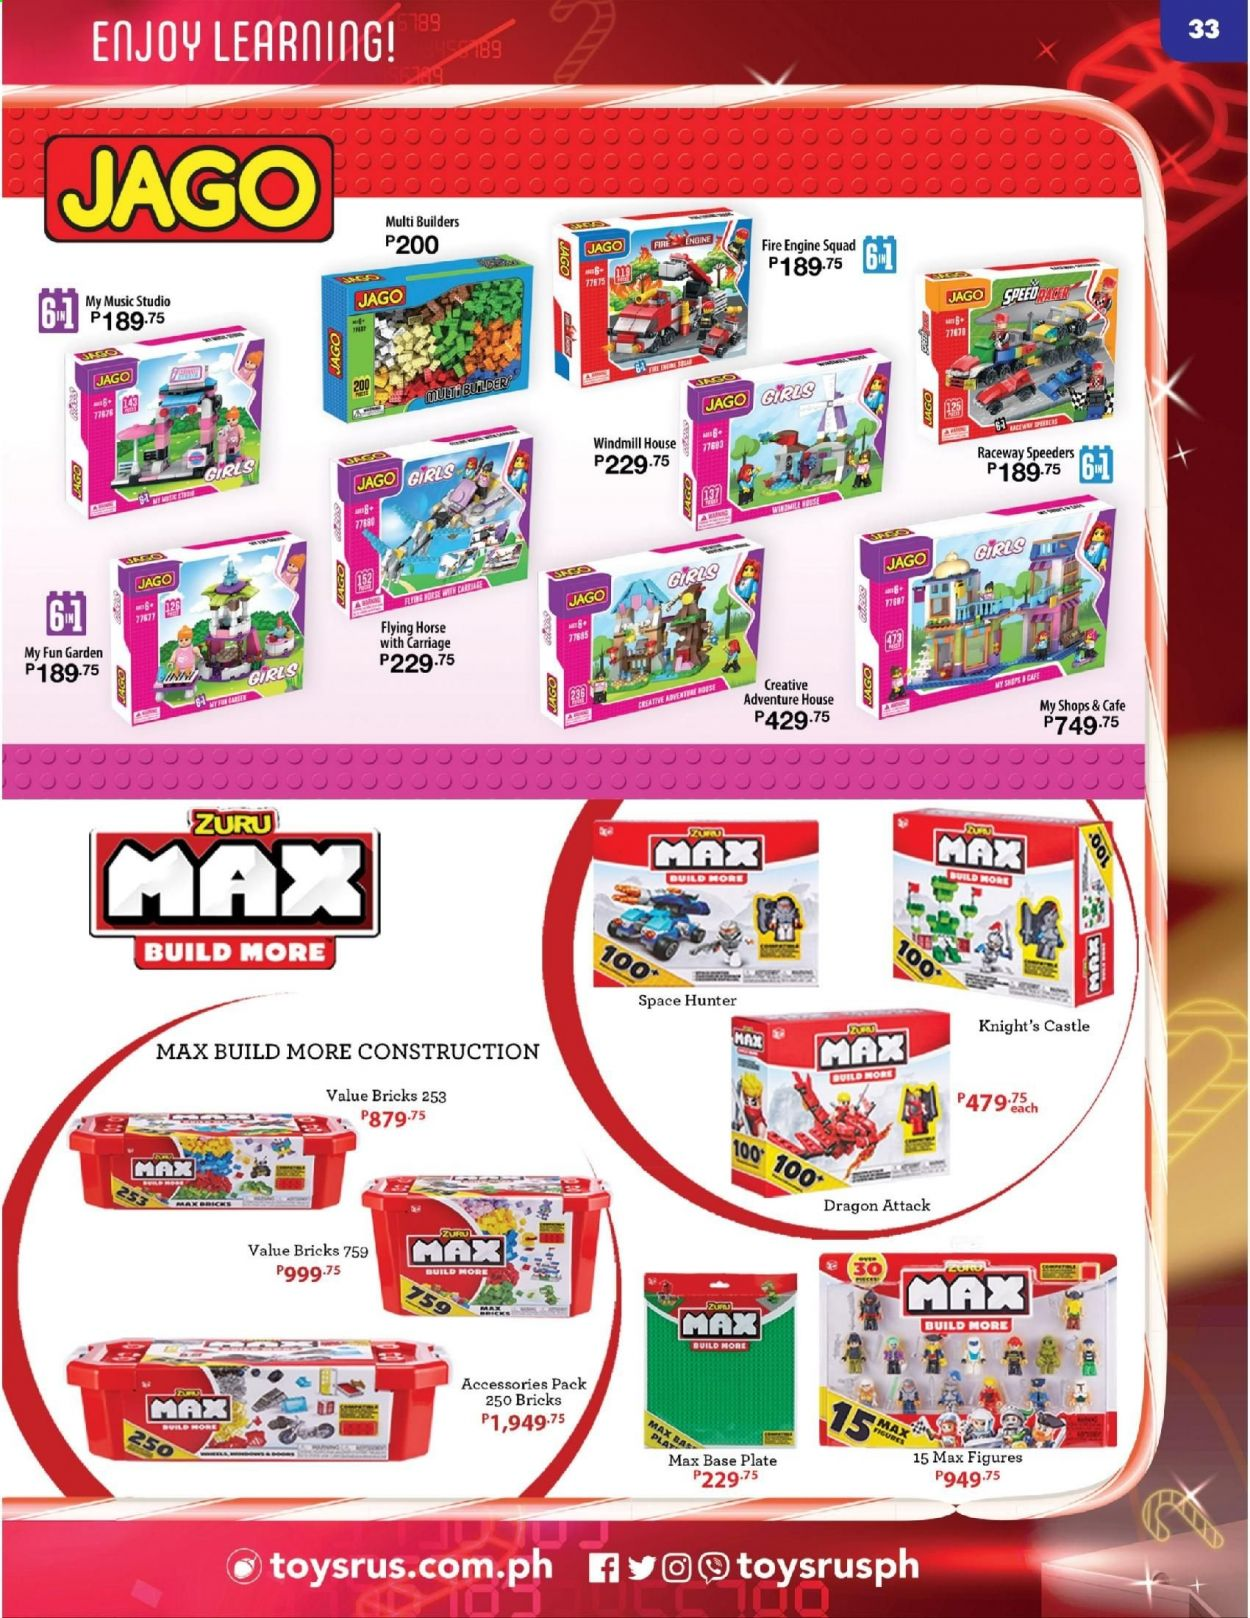 "Toys""R""Us offer  - 10.12.2020 - 31.12.2020 - Sales products - Zuru, bricks. Page 33."